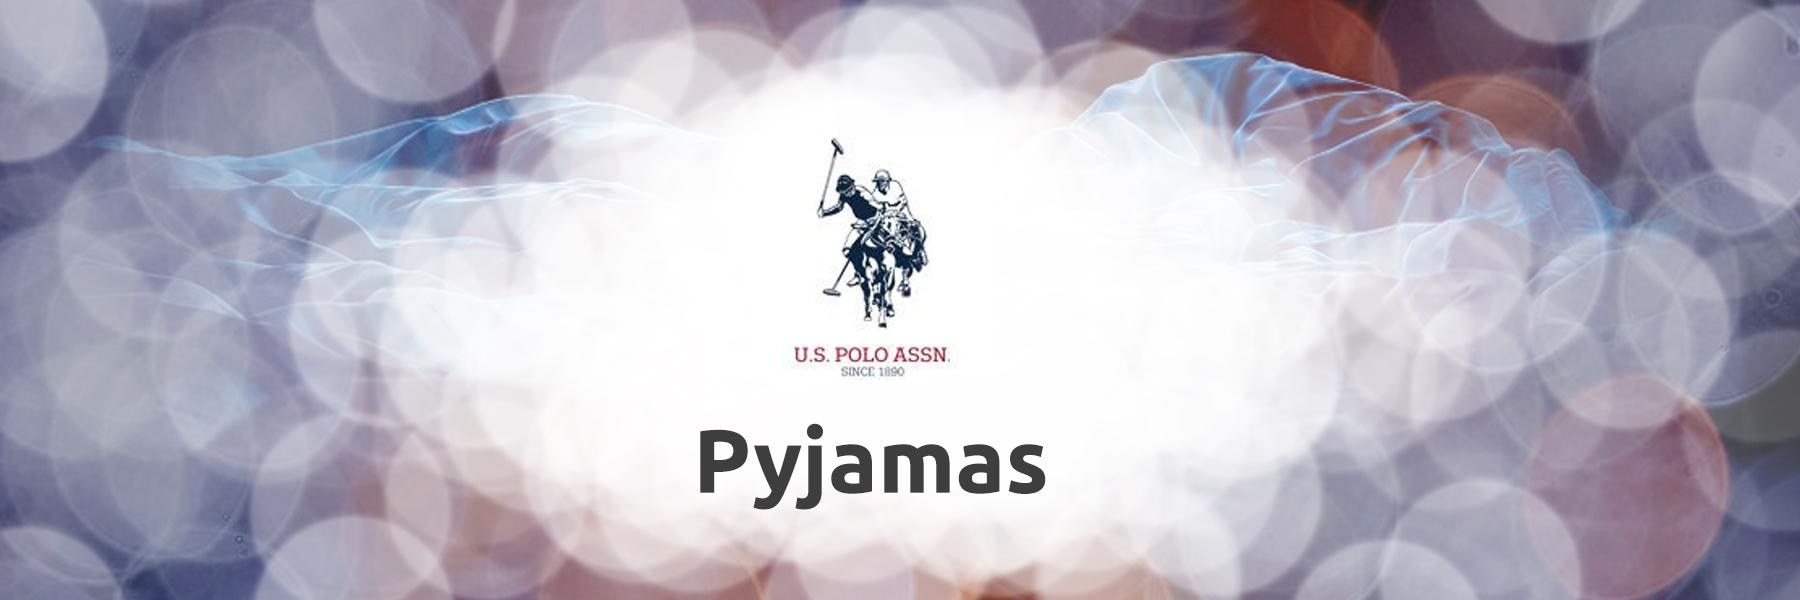 Header_Header_US_POLO_ASSN_Pyjamas